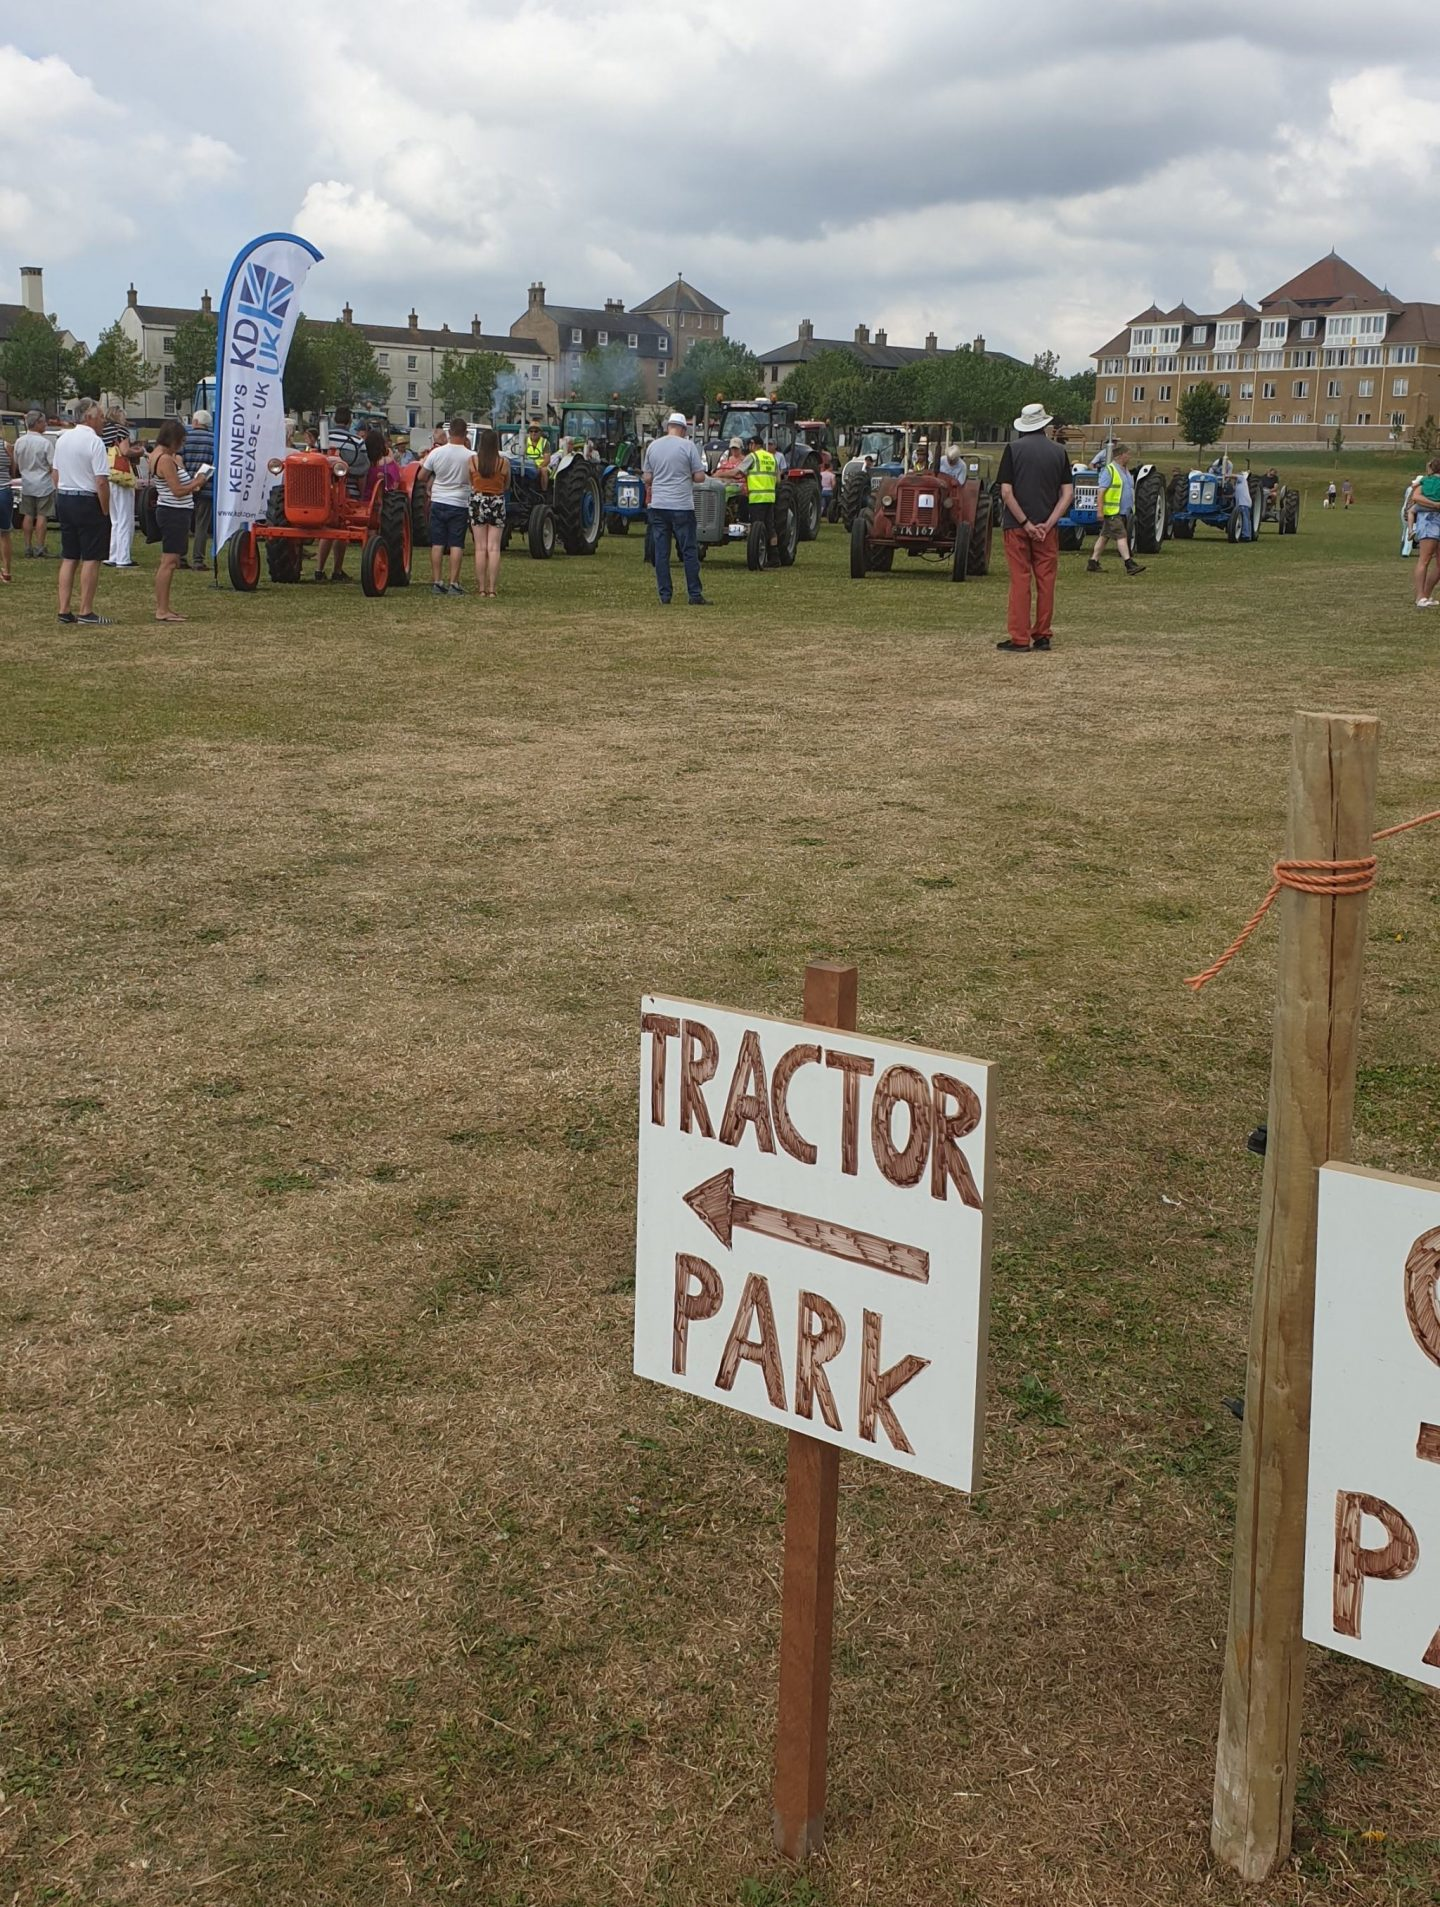 Tractor Park